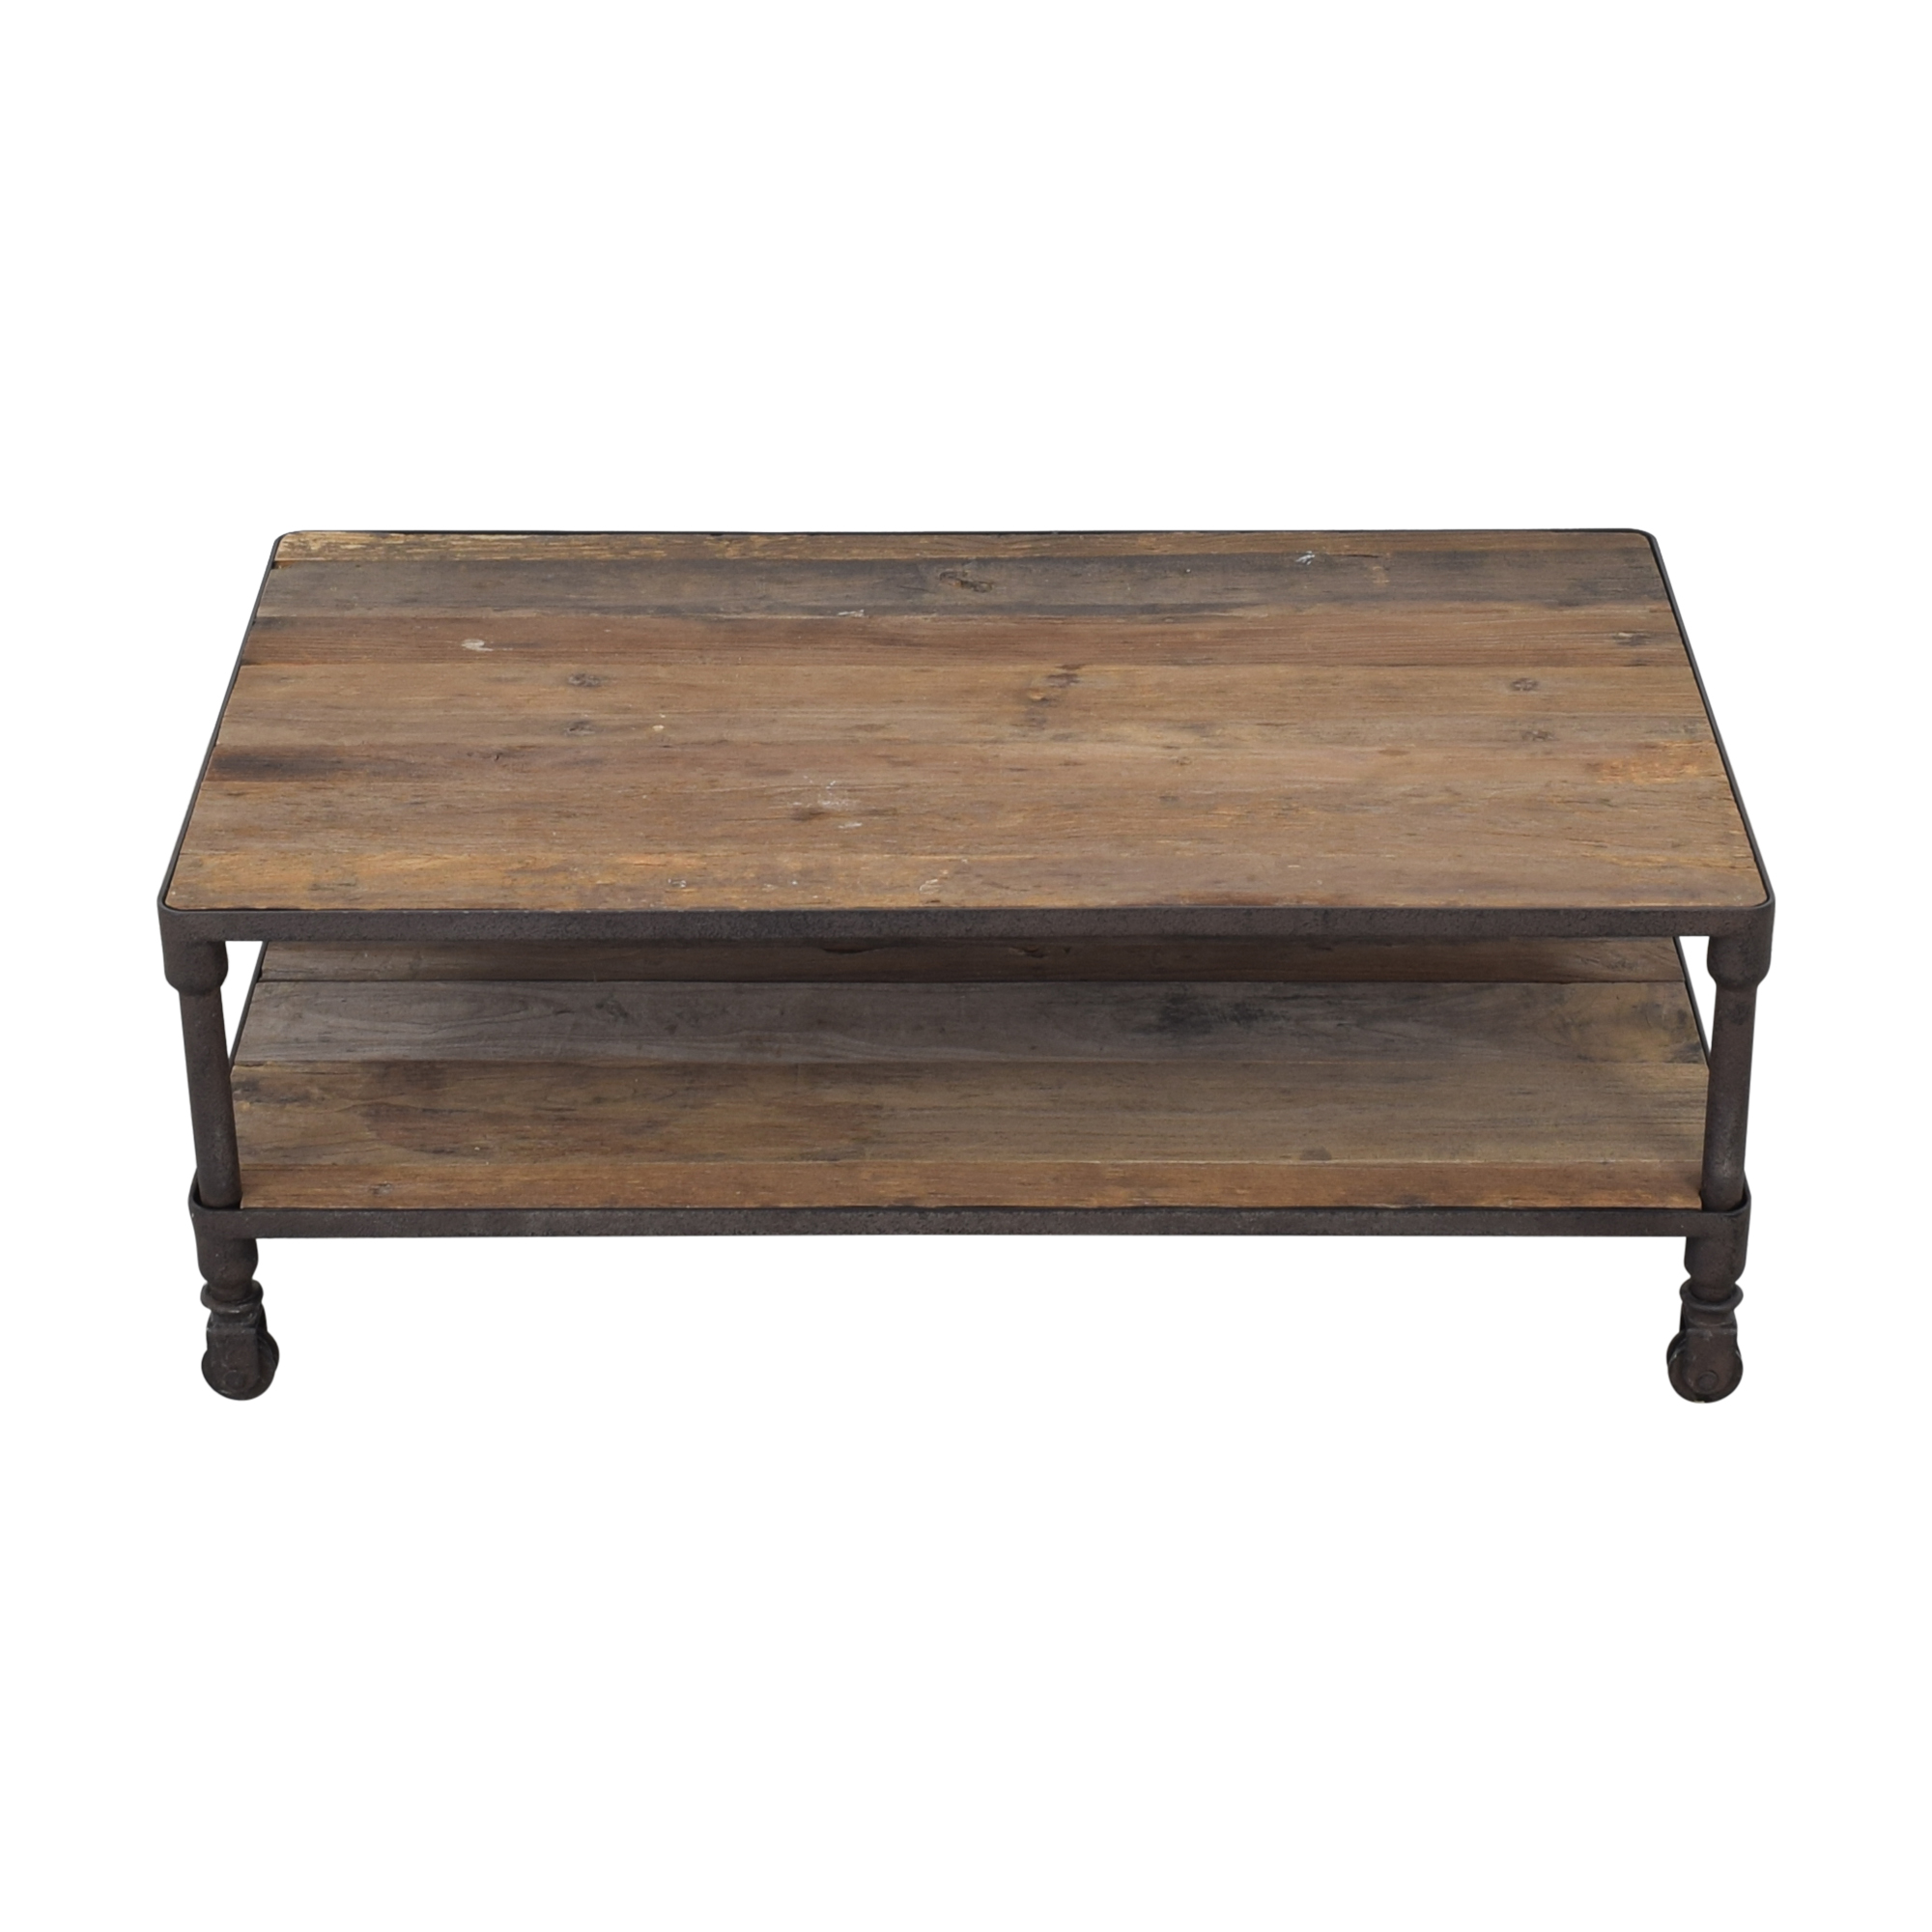 Restoration Hardware Restoration Hardware Dutch Industrial Coffee Table